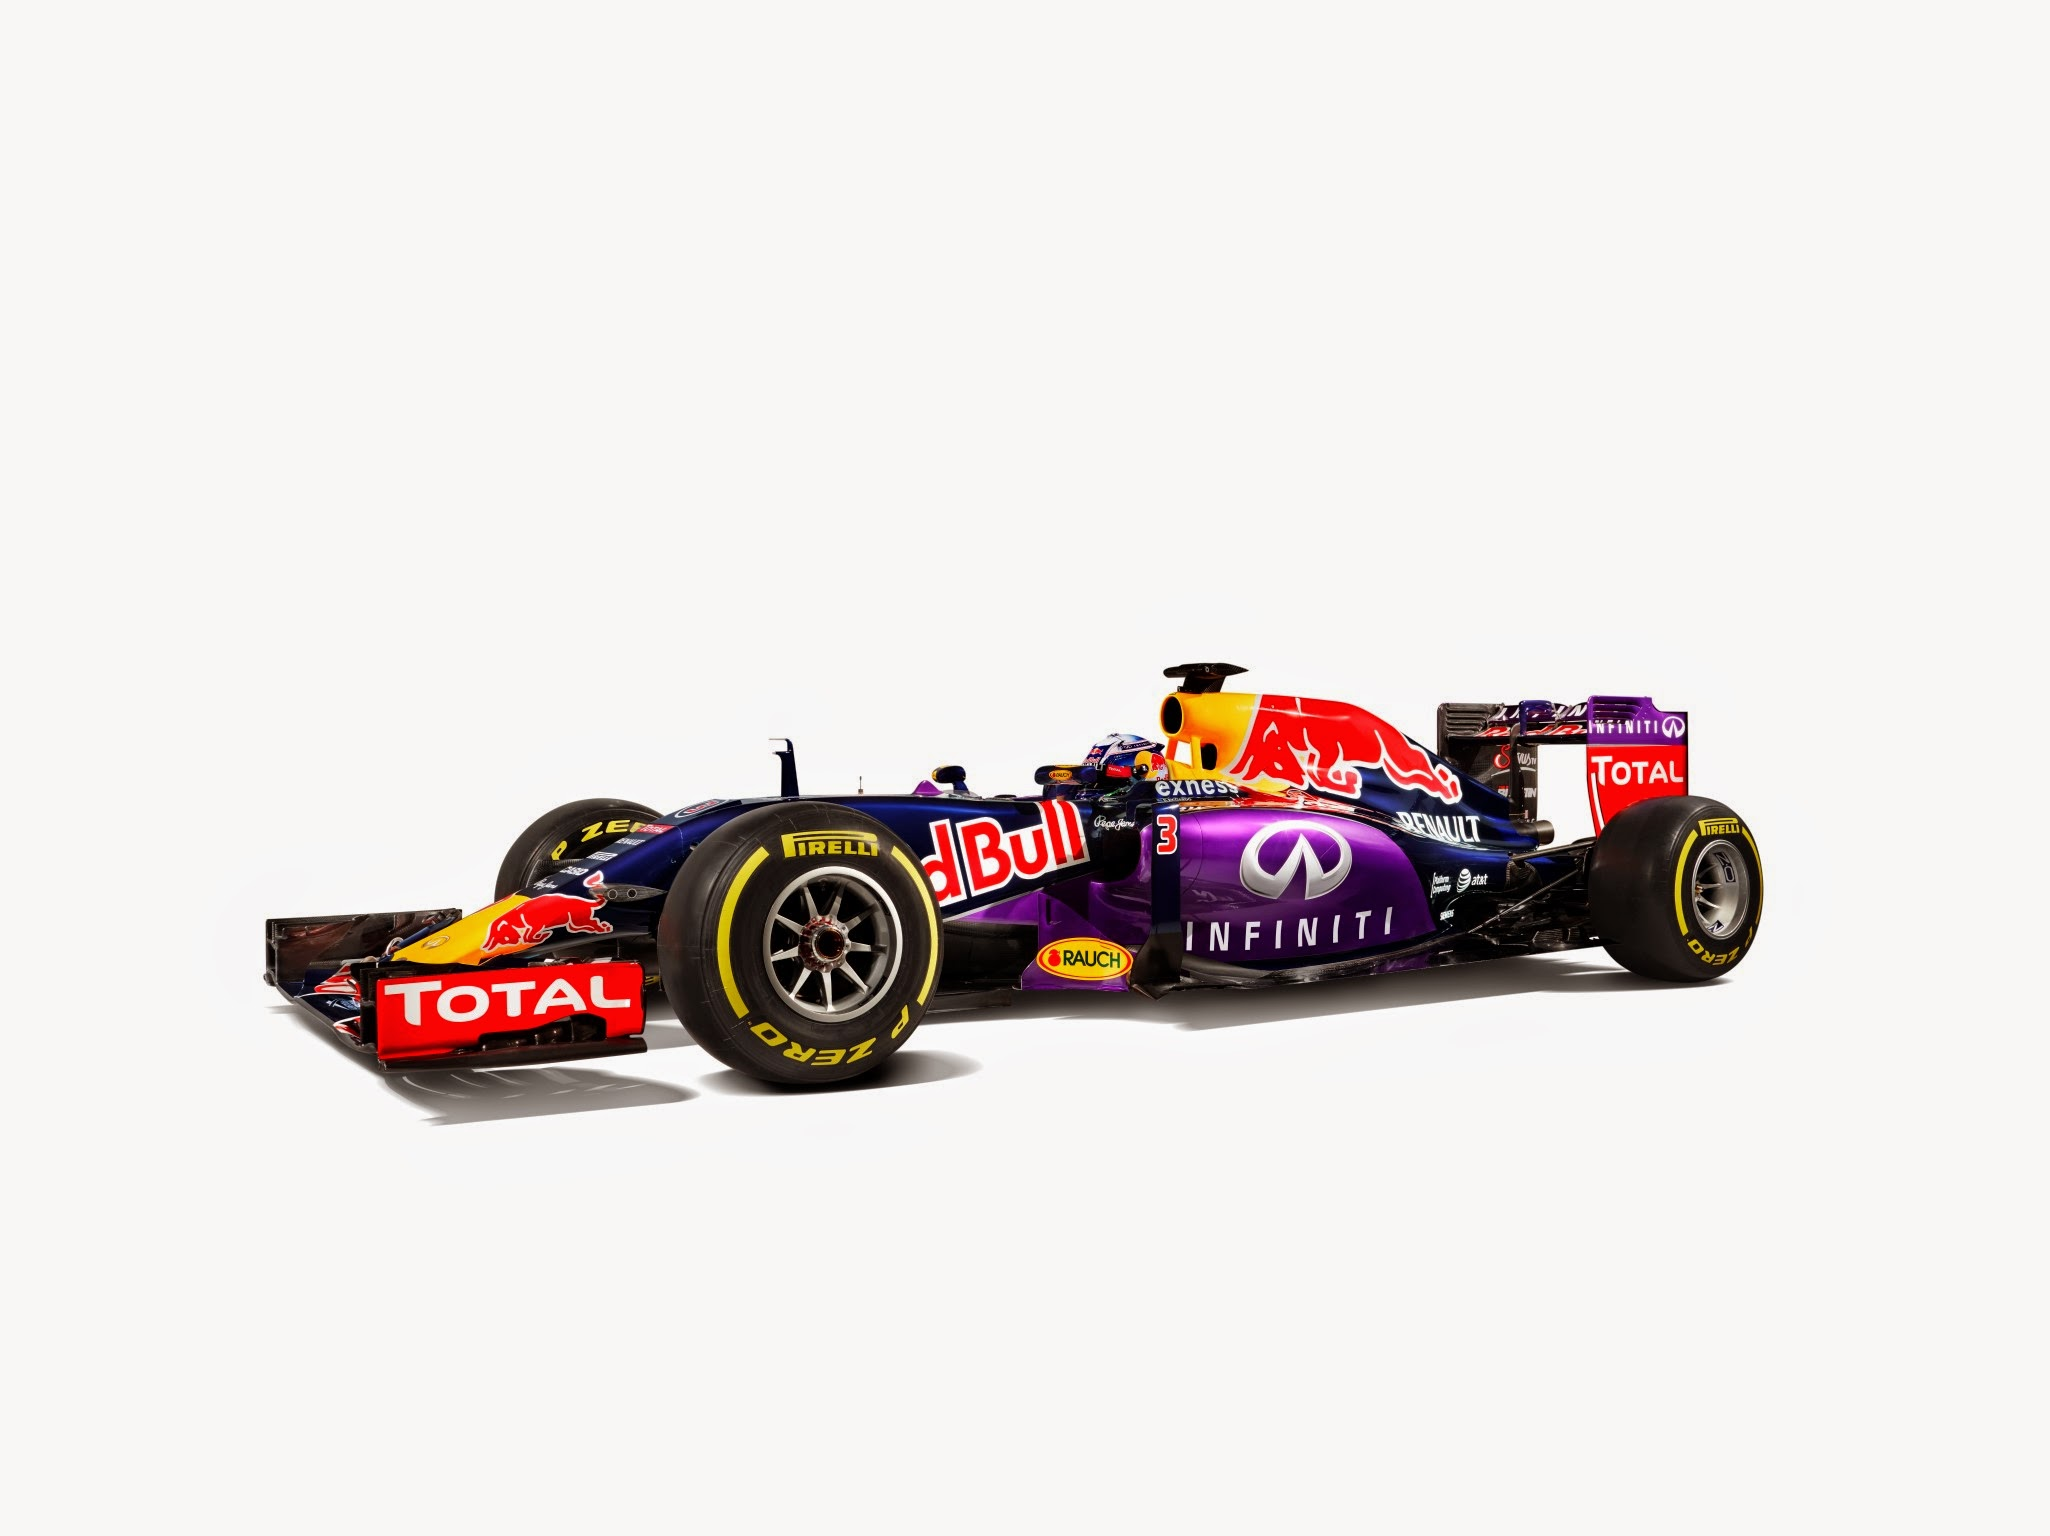 Red Bull RB11 F1 car launch pictures | F1-Fansite.com